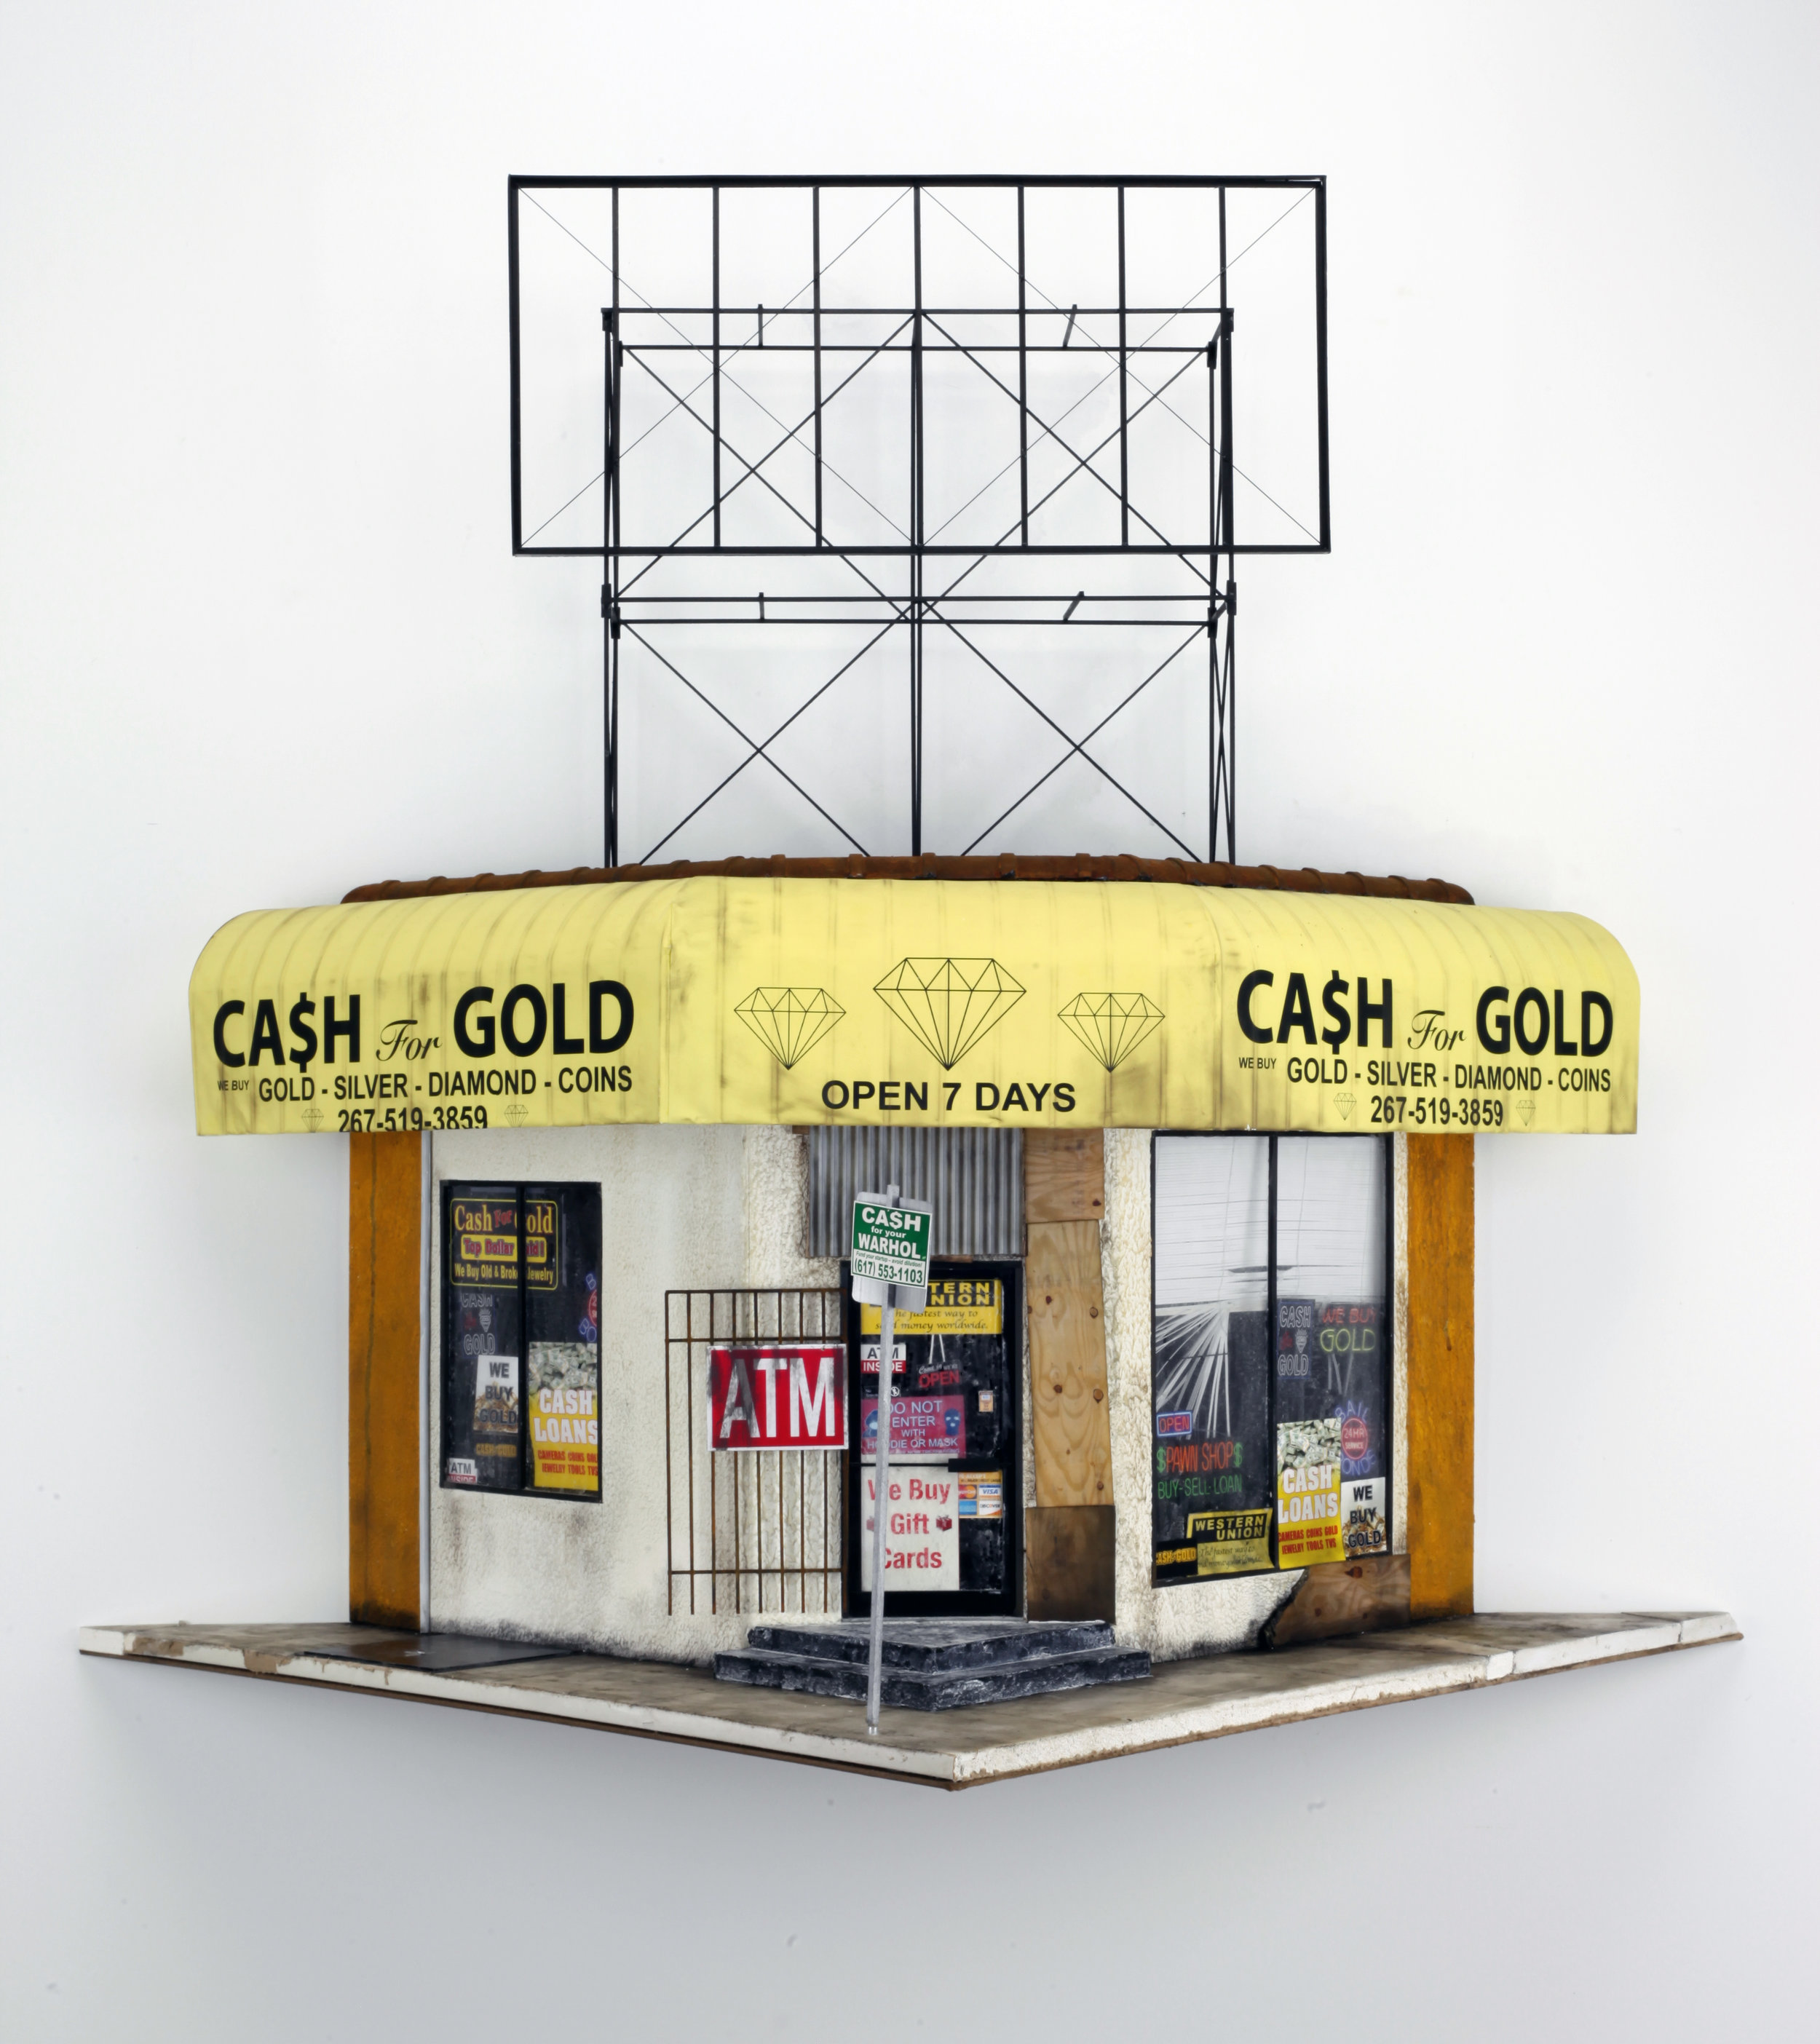 Cash 4 Gold - SOLD